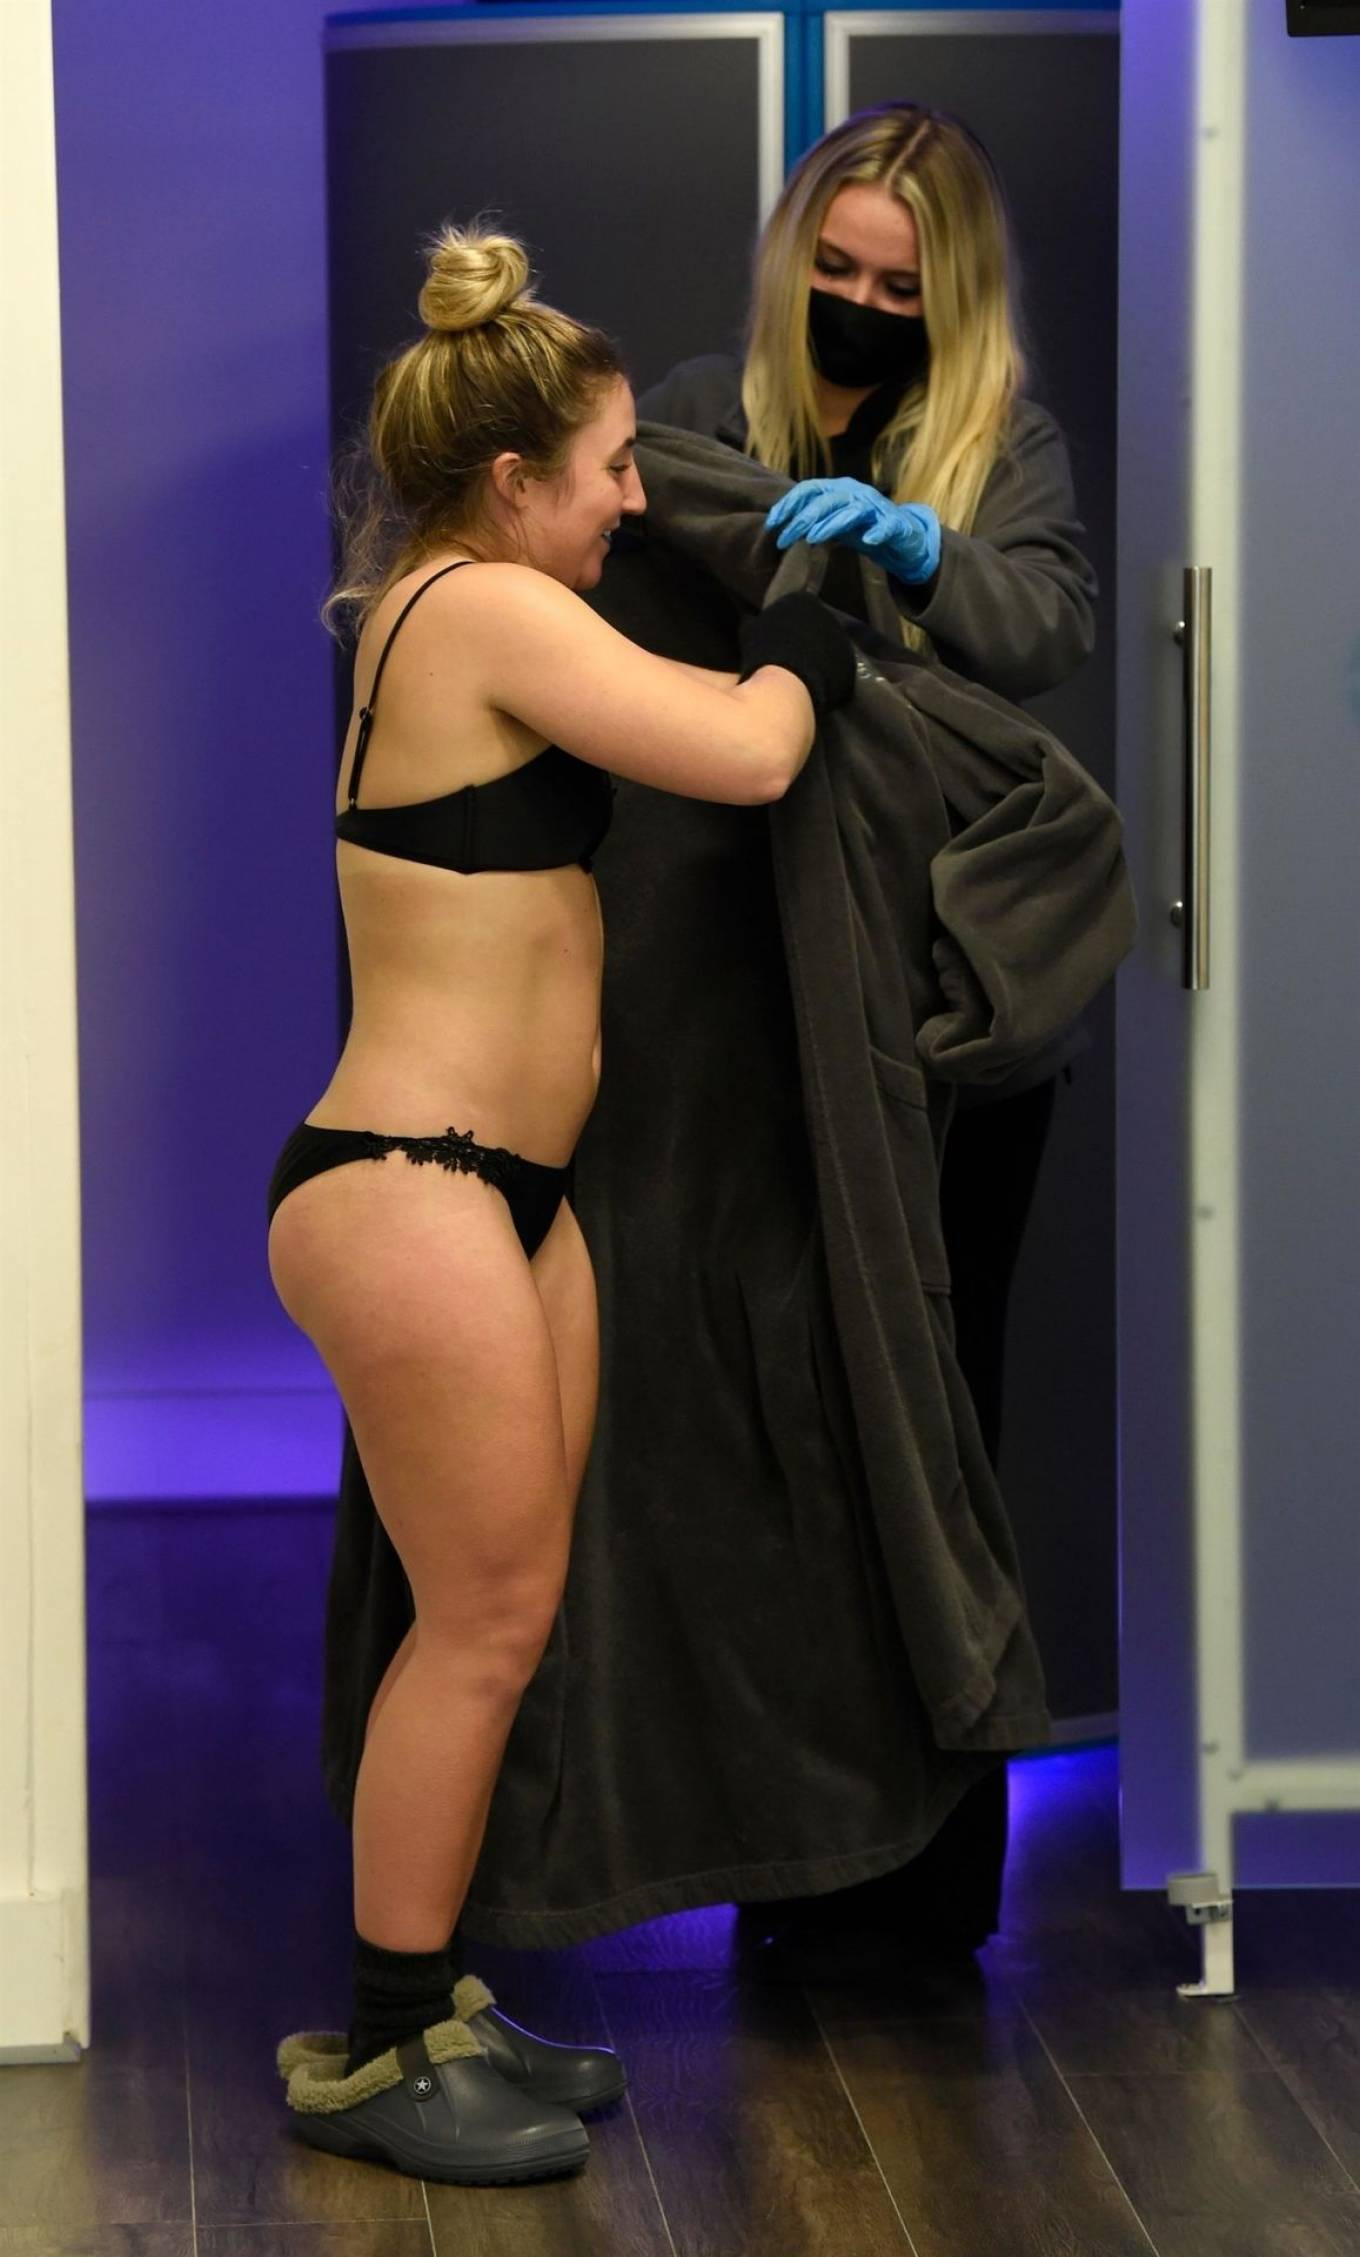 Jazmine-Franks---Pictured-at-the-Cryo-Lab-in-Manchester-17.jpg